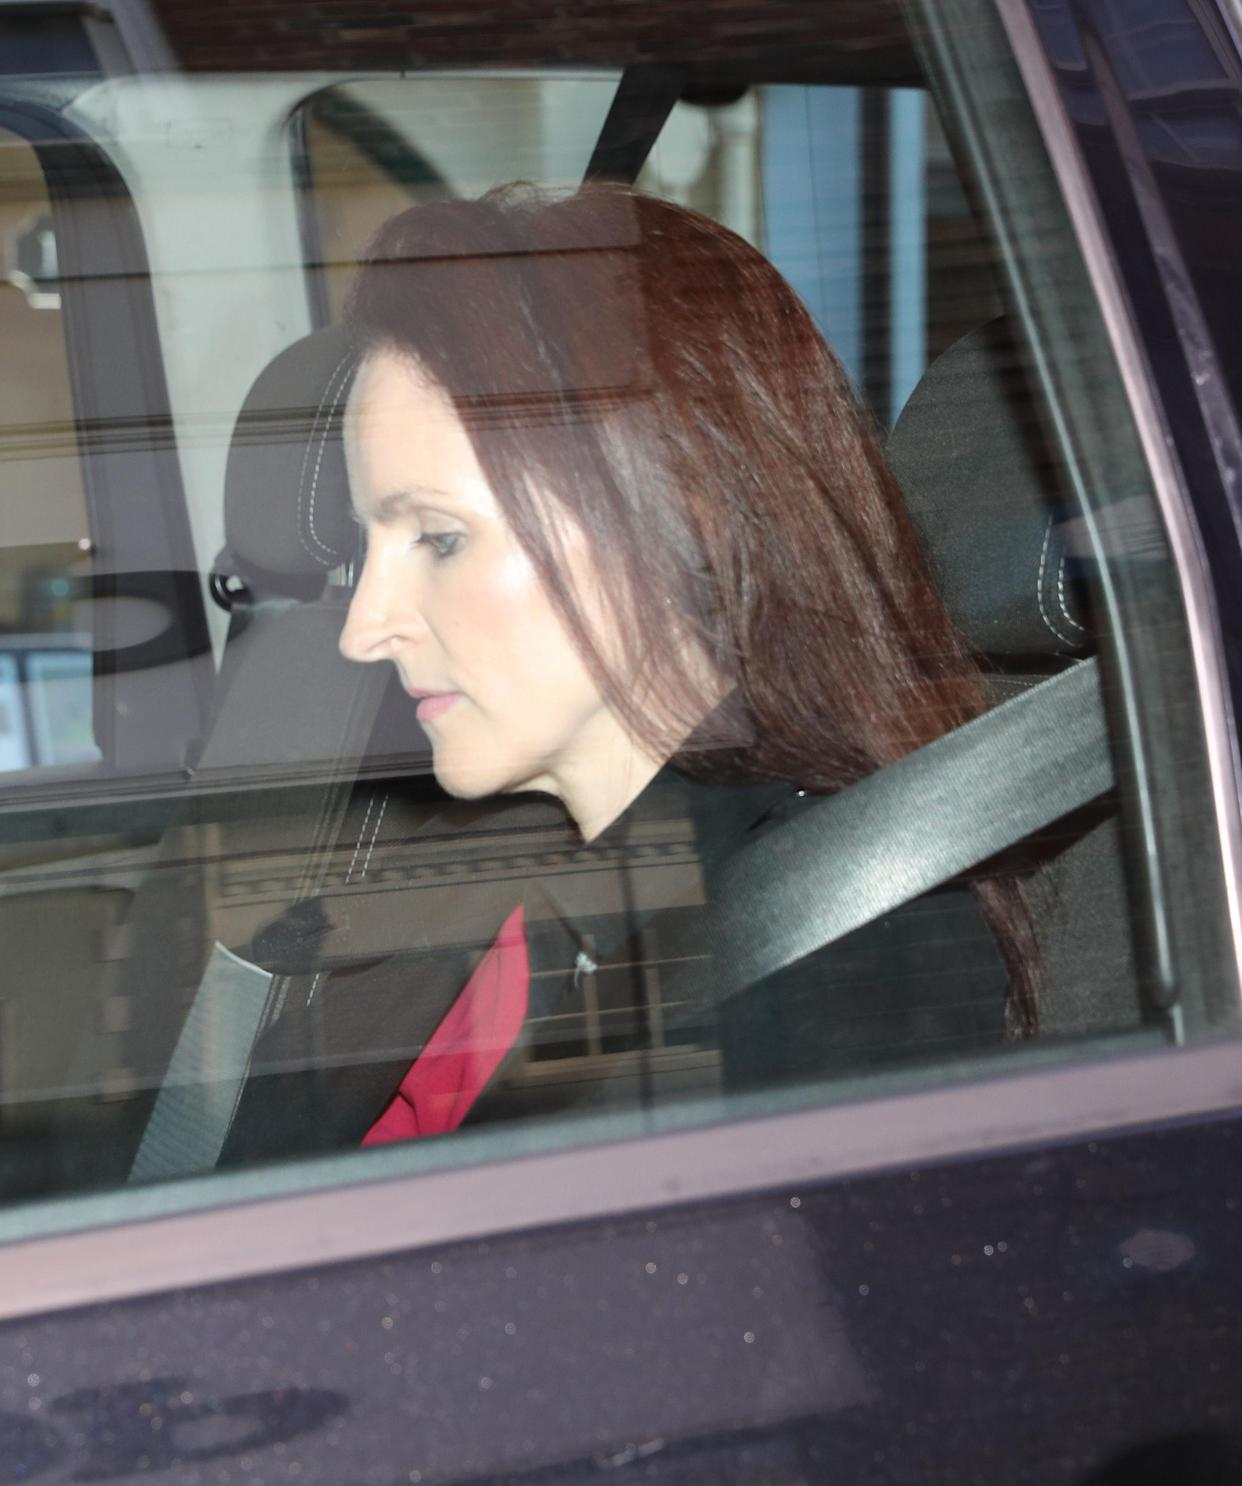 <em>Victoria Cilliers doesn't believe that her husband is guilty of trying to kill her, despite him facing life in jail for attempted murder (Picture: PA)</em>